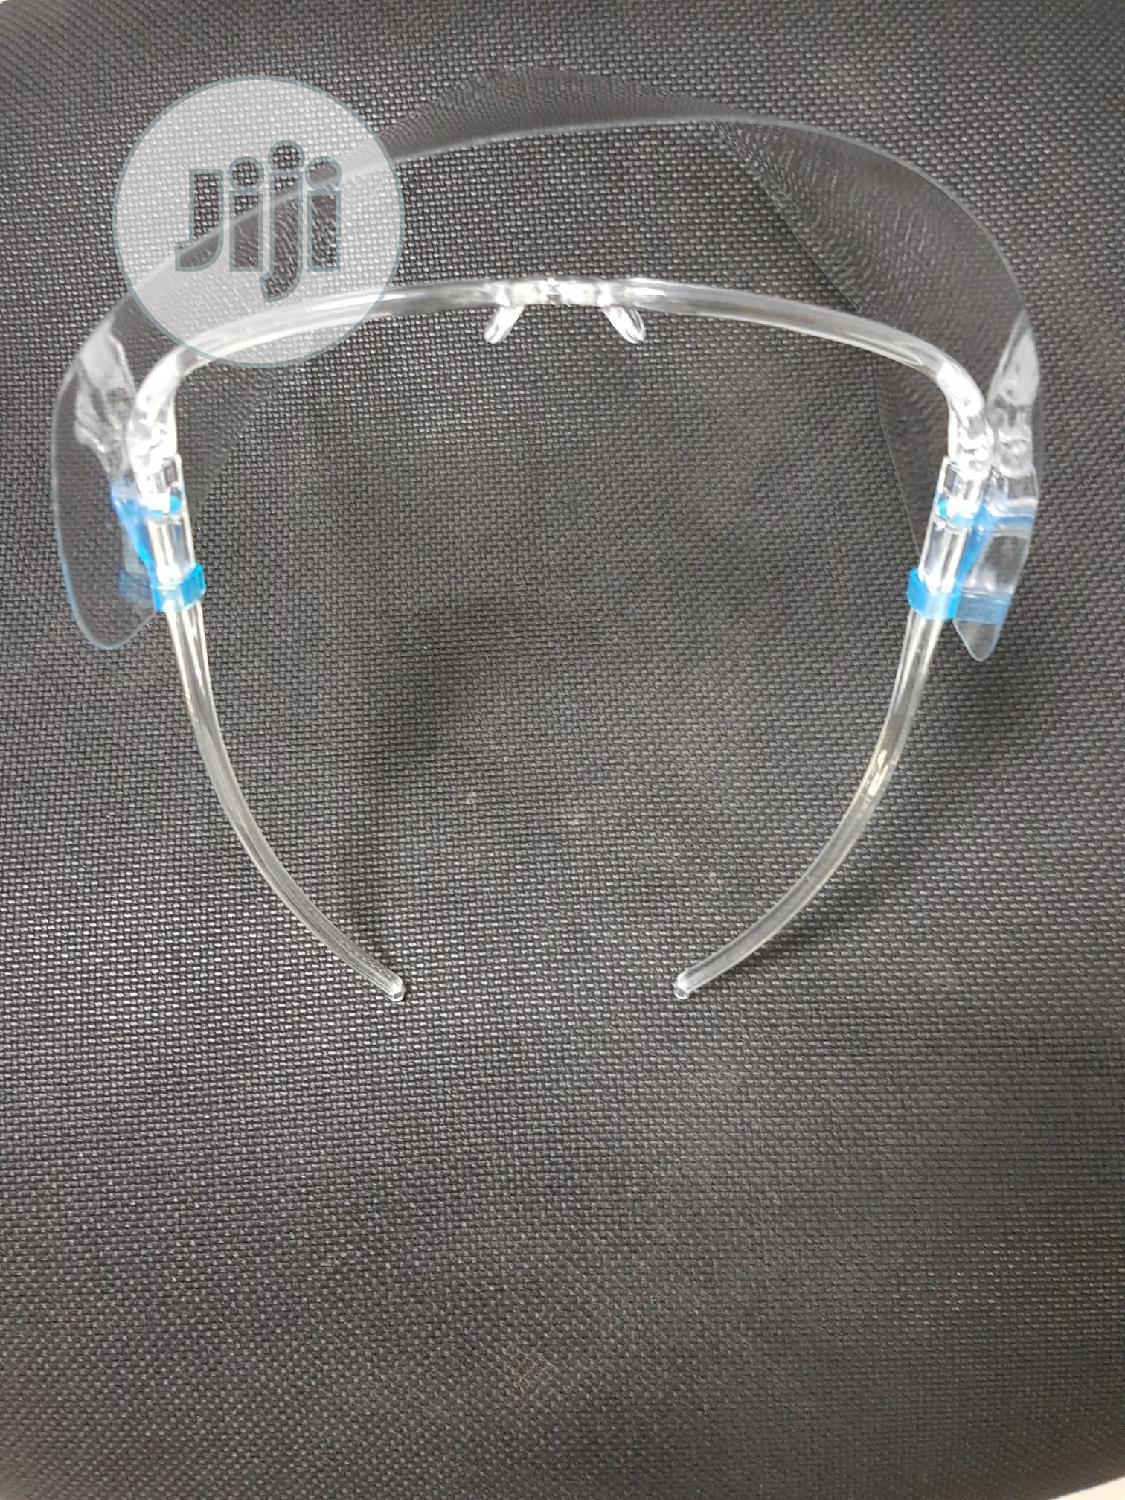 Archive: Face Shield With Glasses